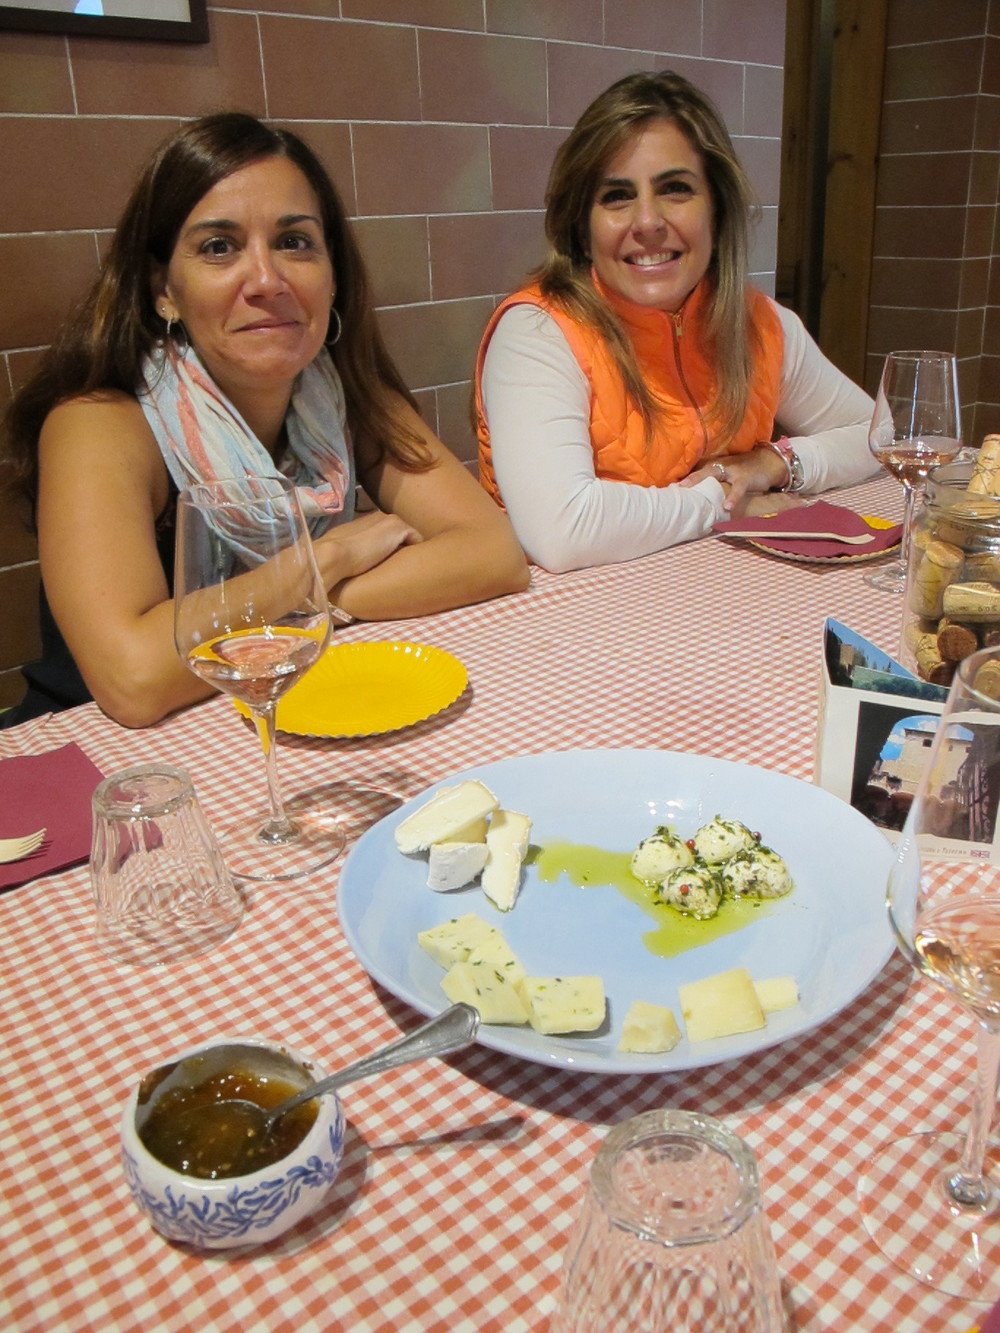 Wine and cheese tasting at Corzano e Paterno. Photo: Marco Dettling